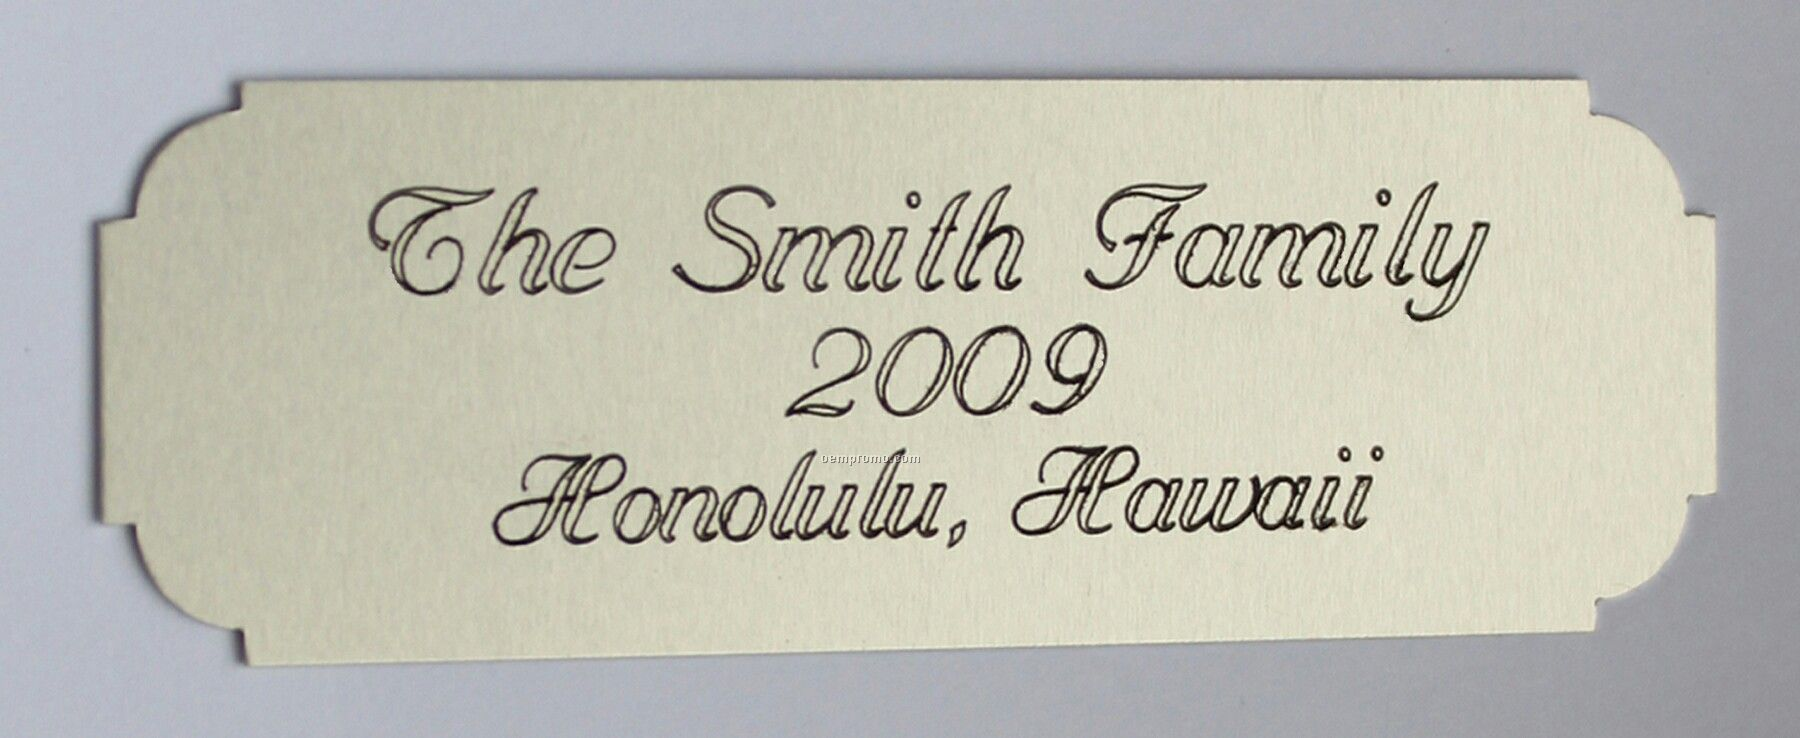 Laser Engraved Satin Silver Name Plate 3 Quot W X 1 Quot H China